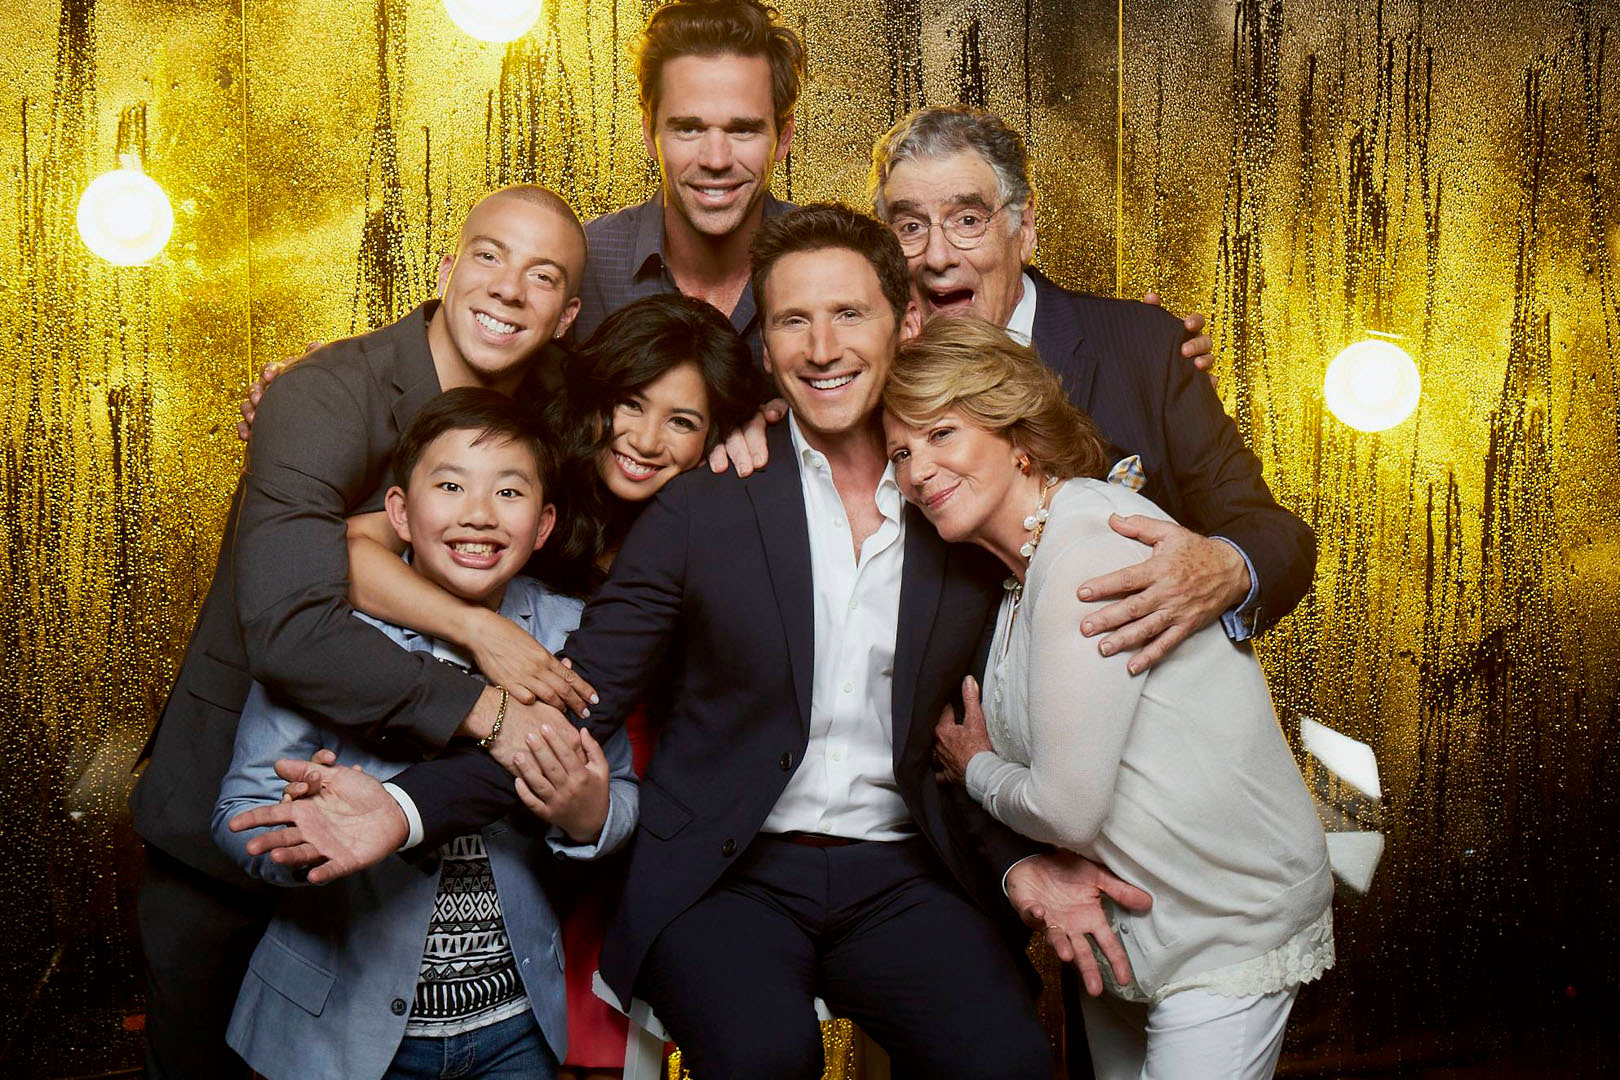 Both on and off set, the 9JKL family has a good time